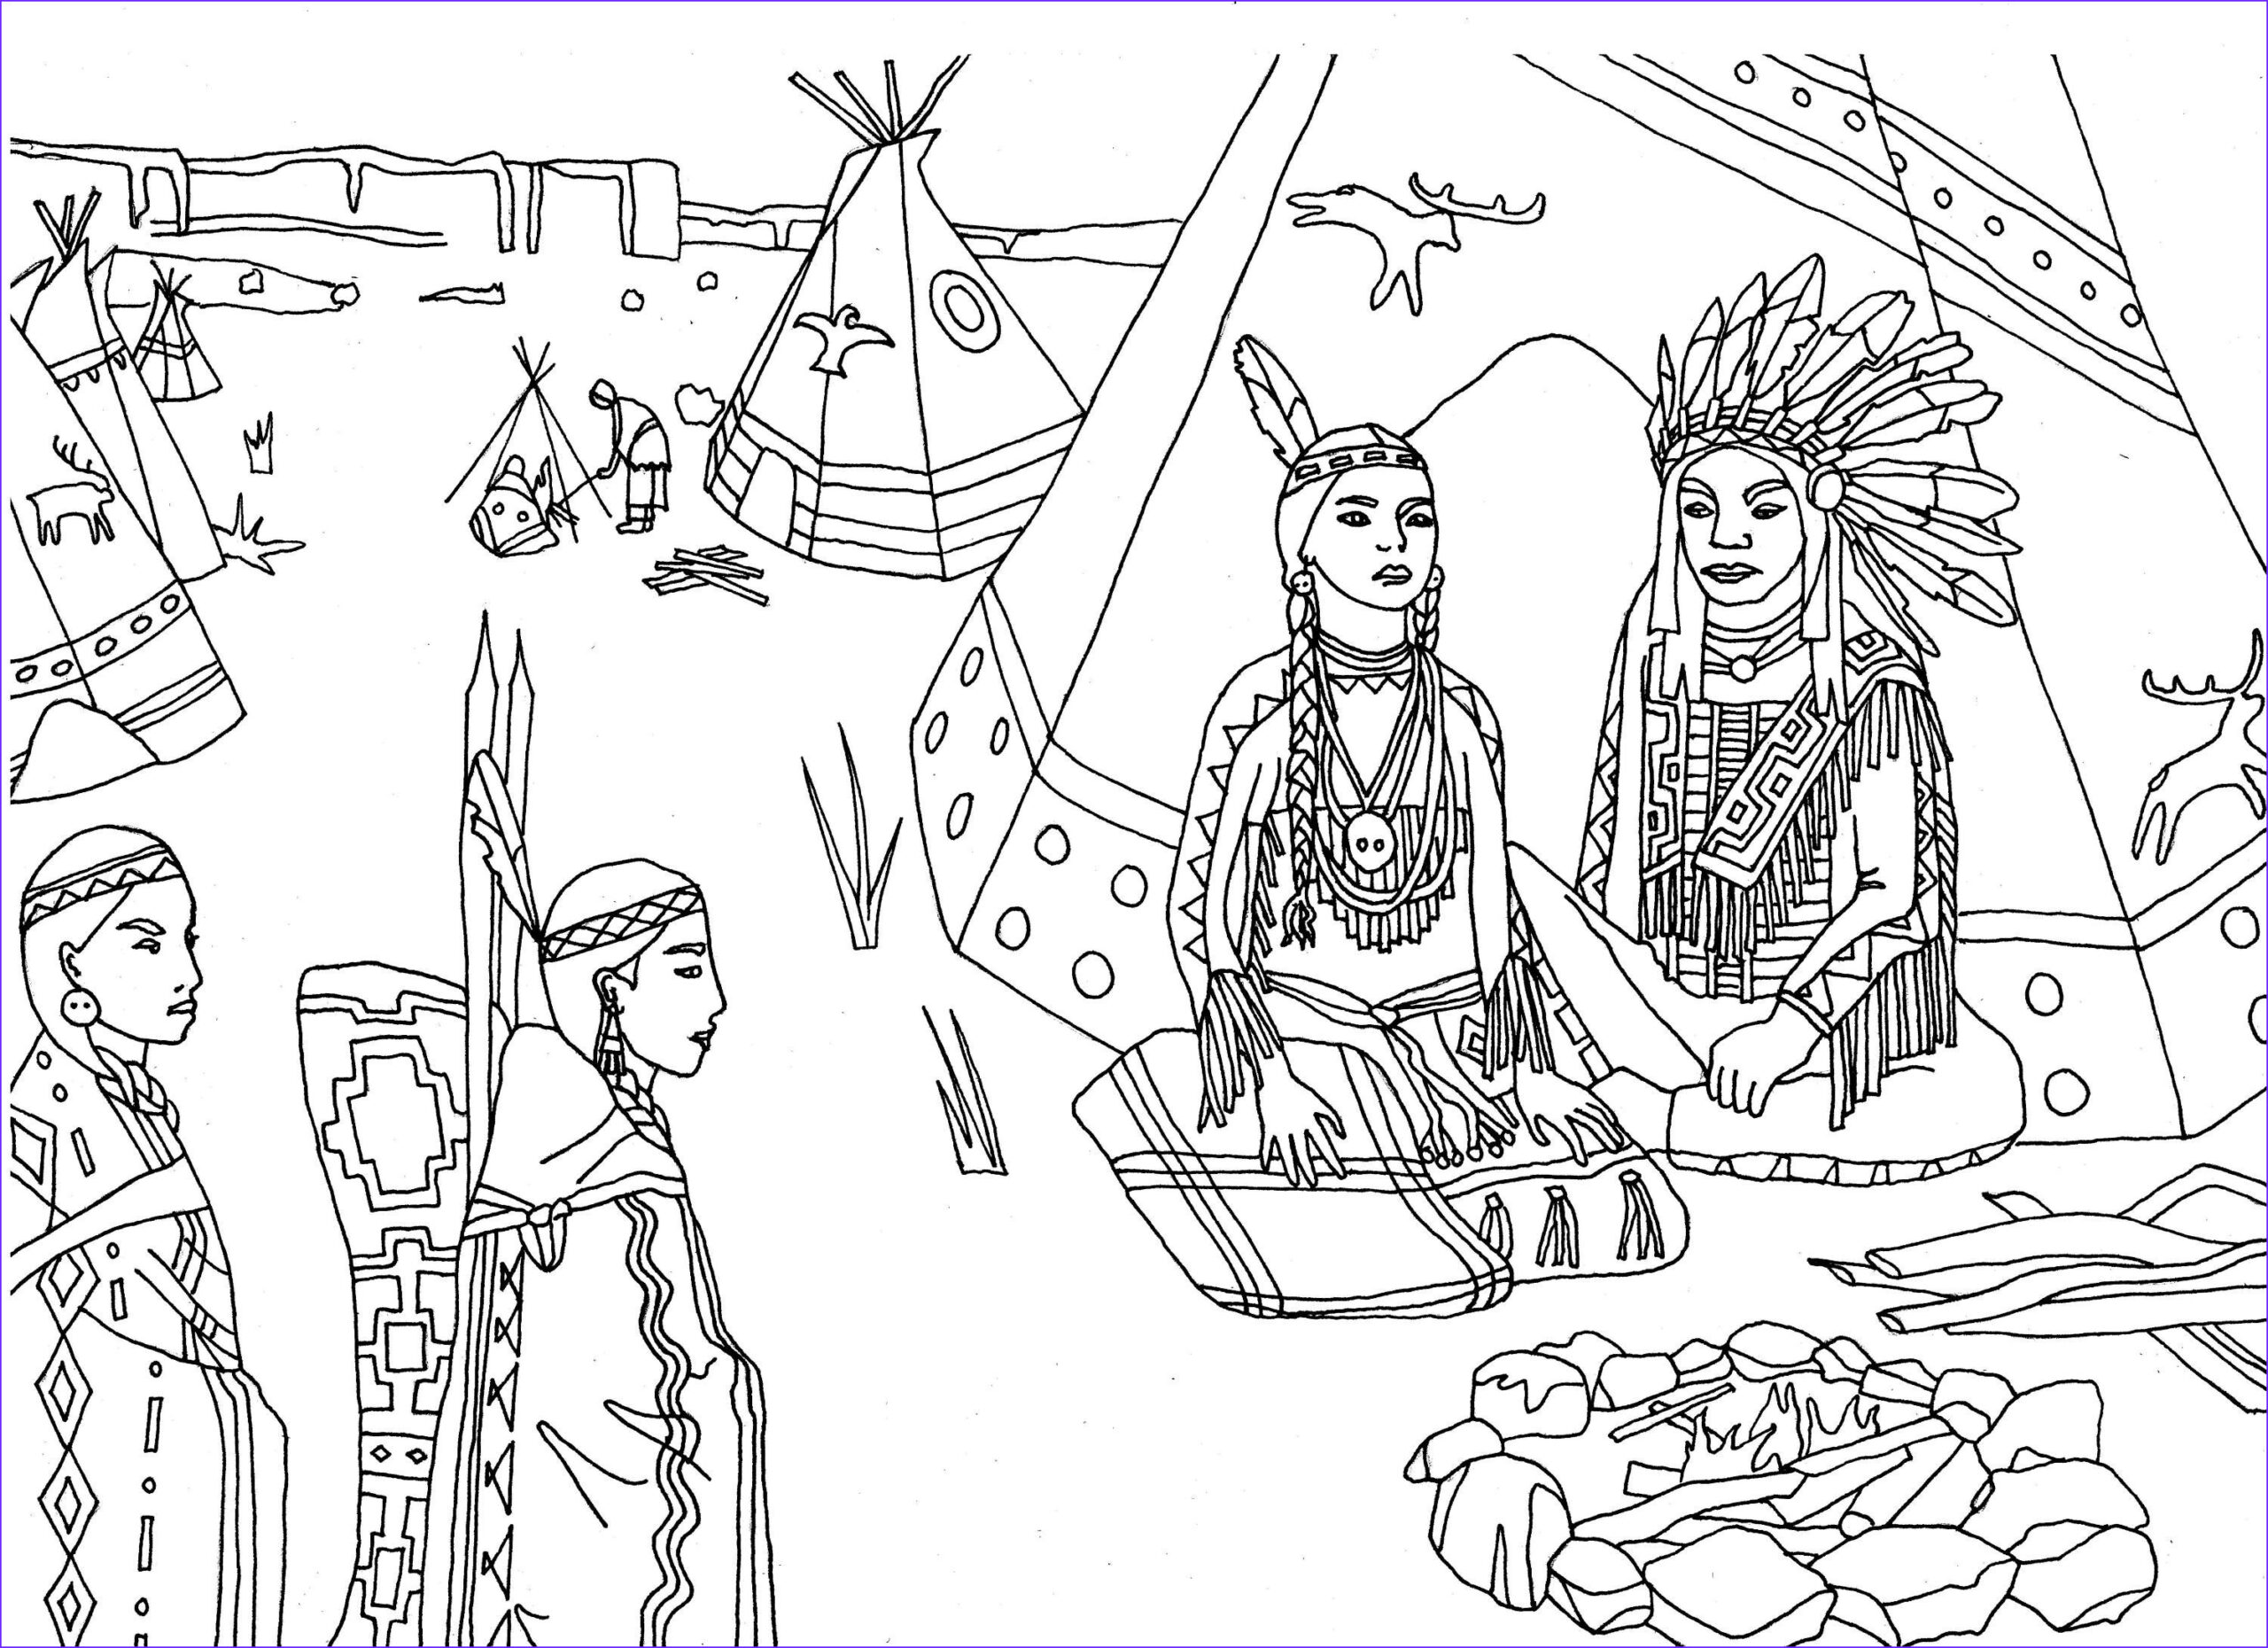 Native American Coloring Sheets Beautiful Photos Free Coloring Page Coloring Adult Native Americans Indians